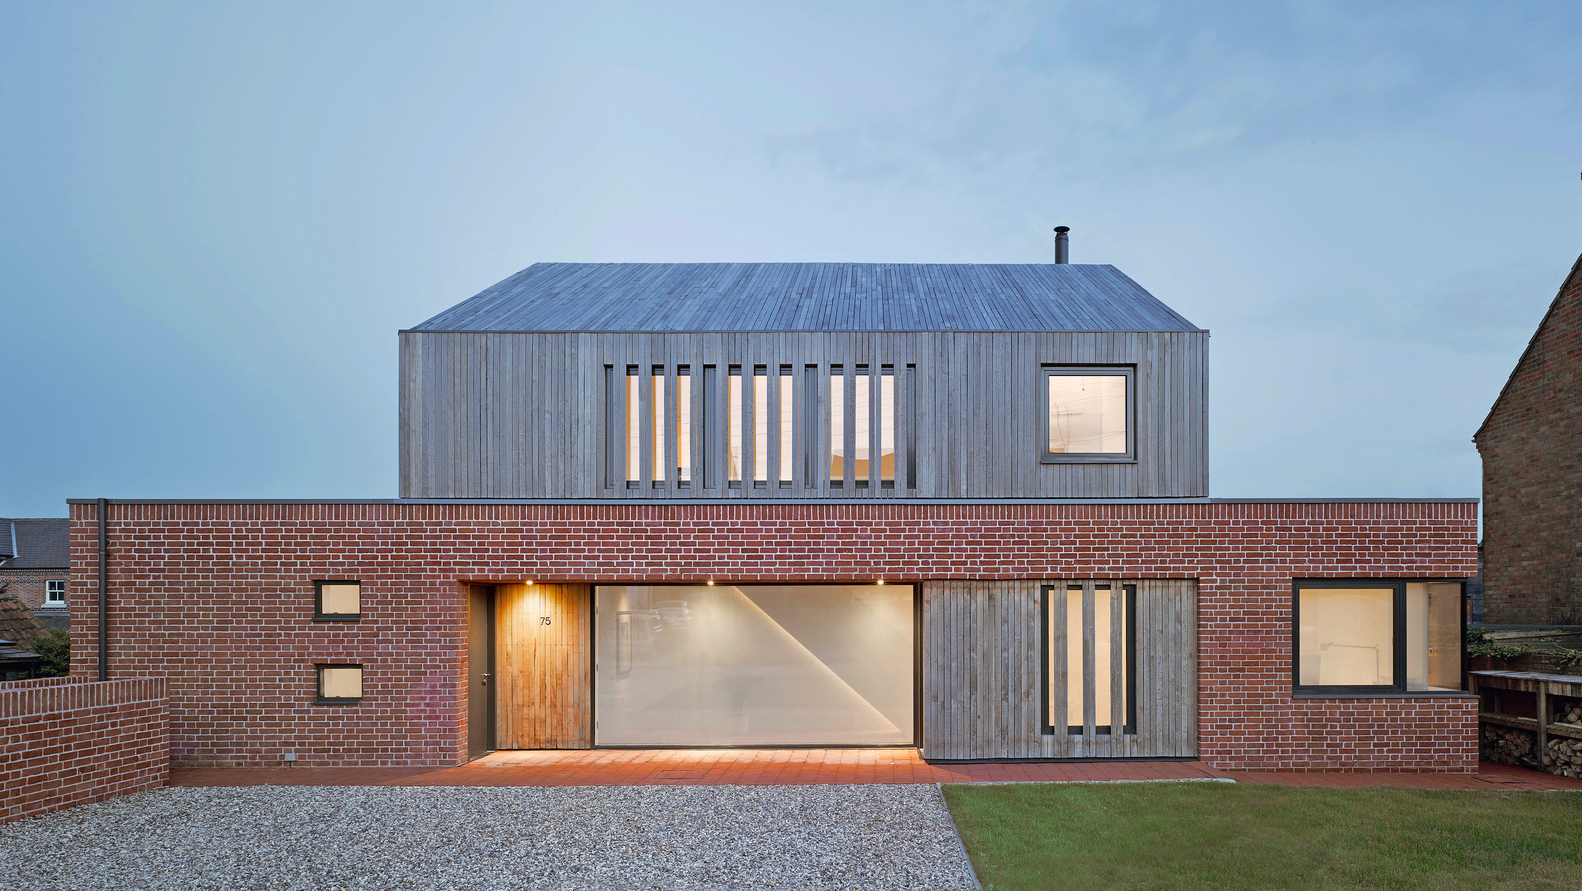 1_broad-street-house-in-suffolk_nash-baker-architects_inspirationist